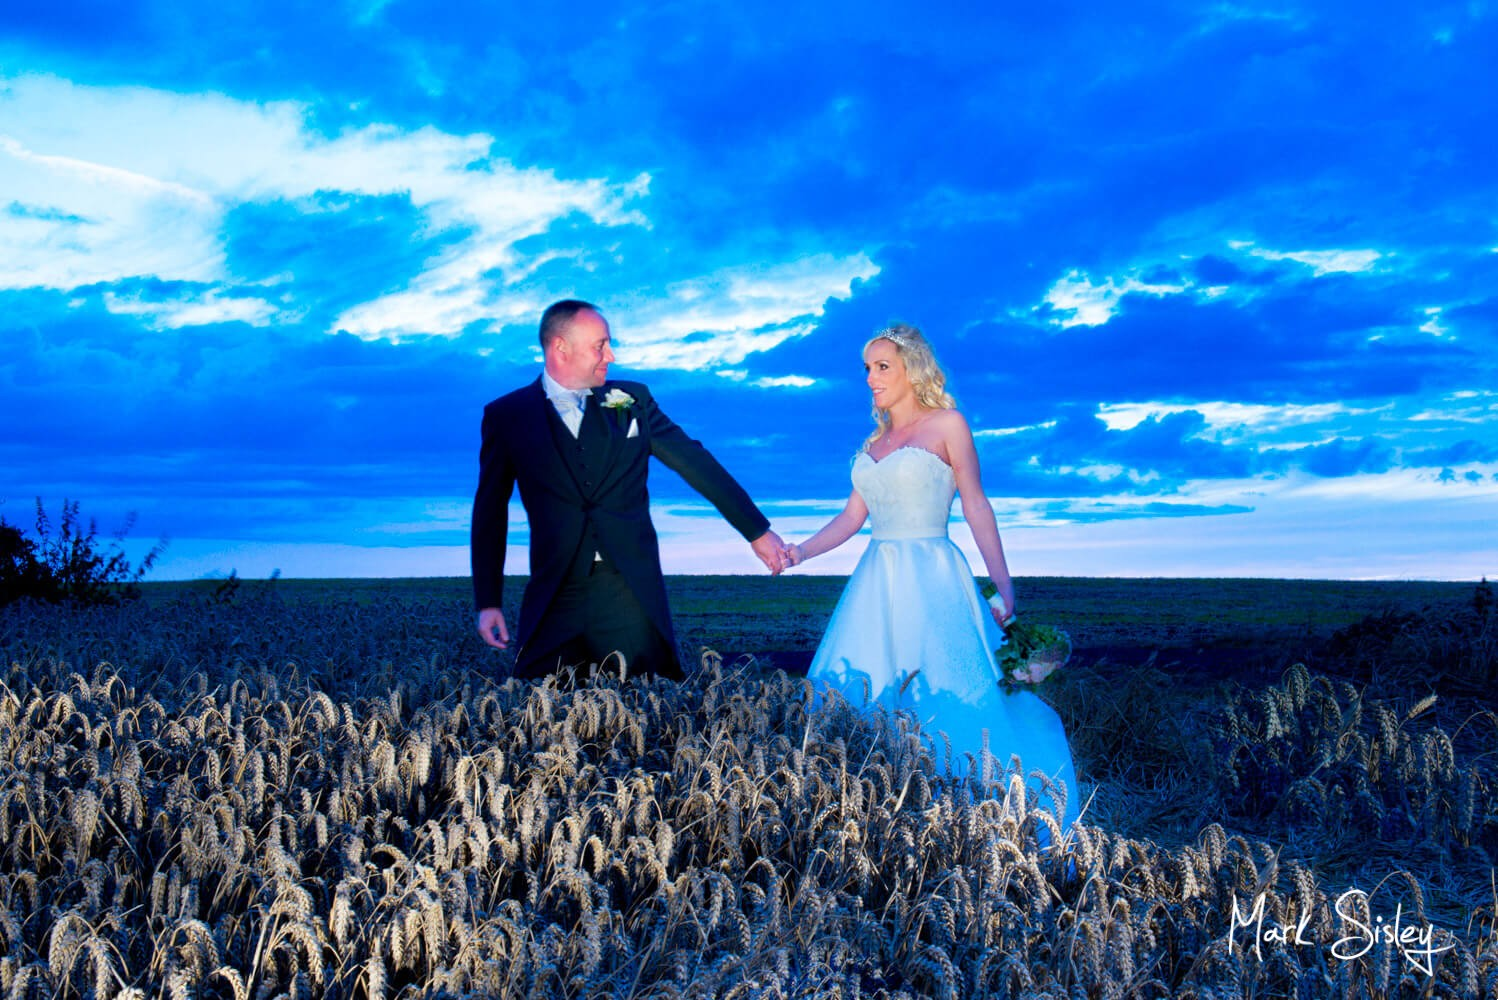 Notley Tythe Barn wedding in the wheat field at dusk